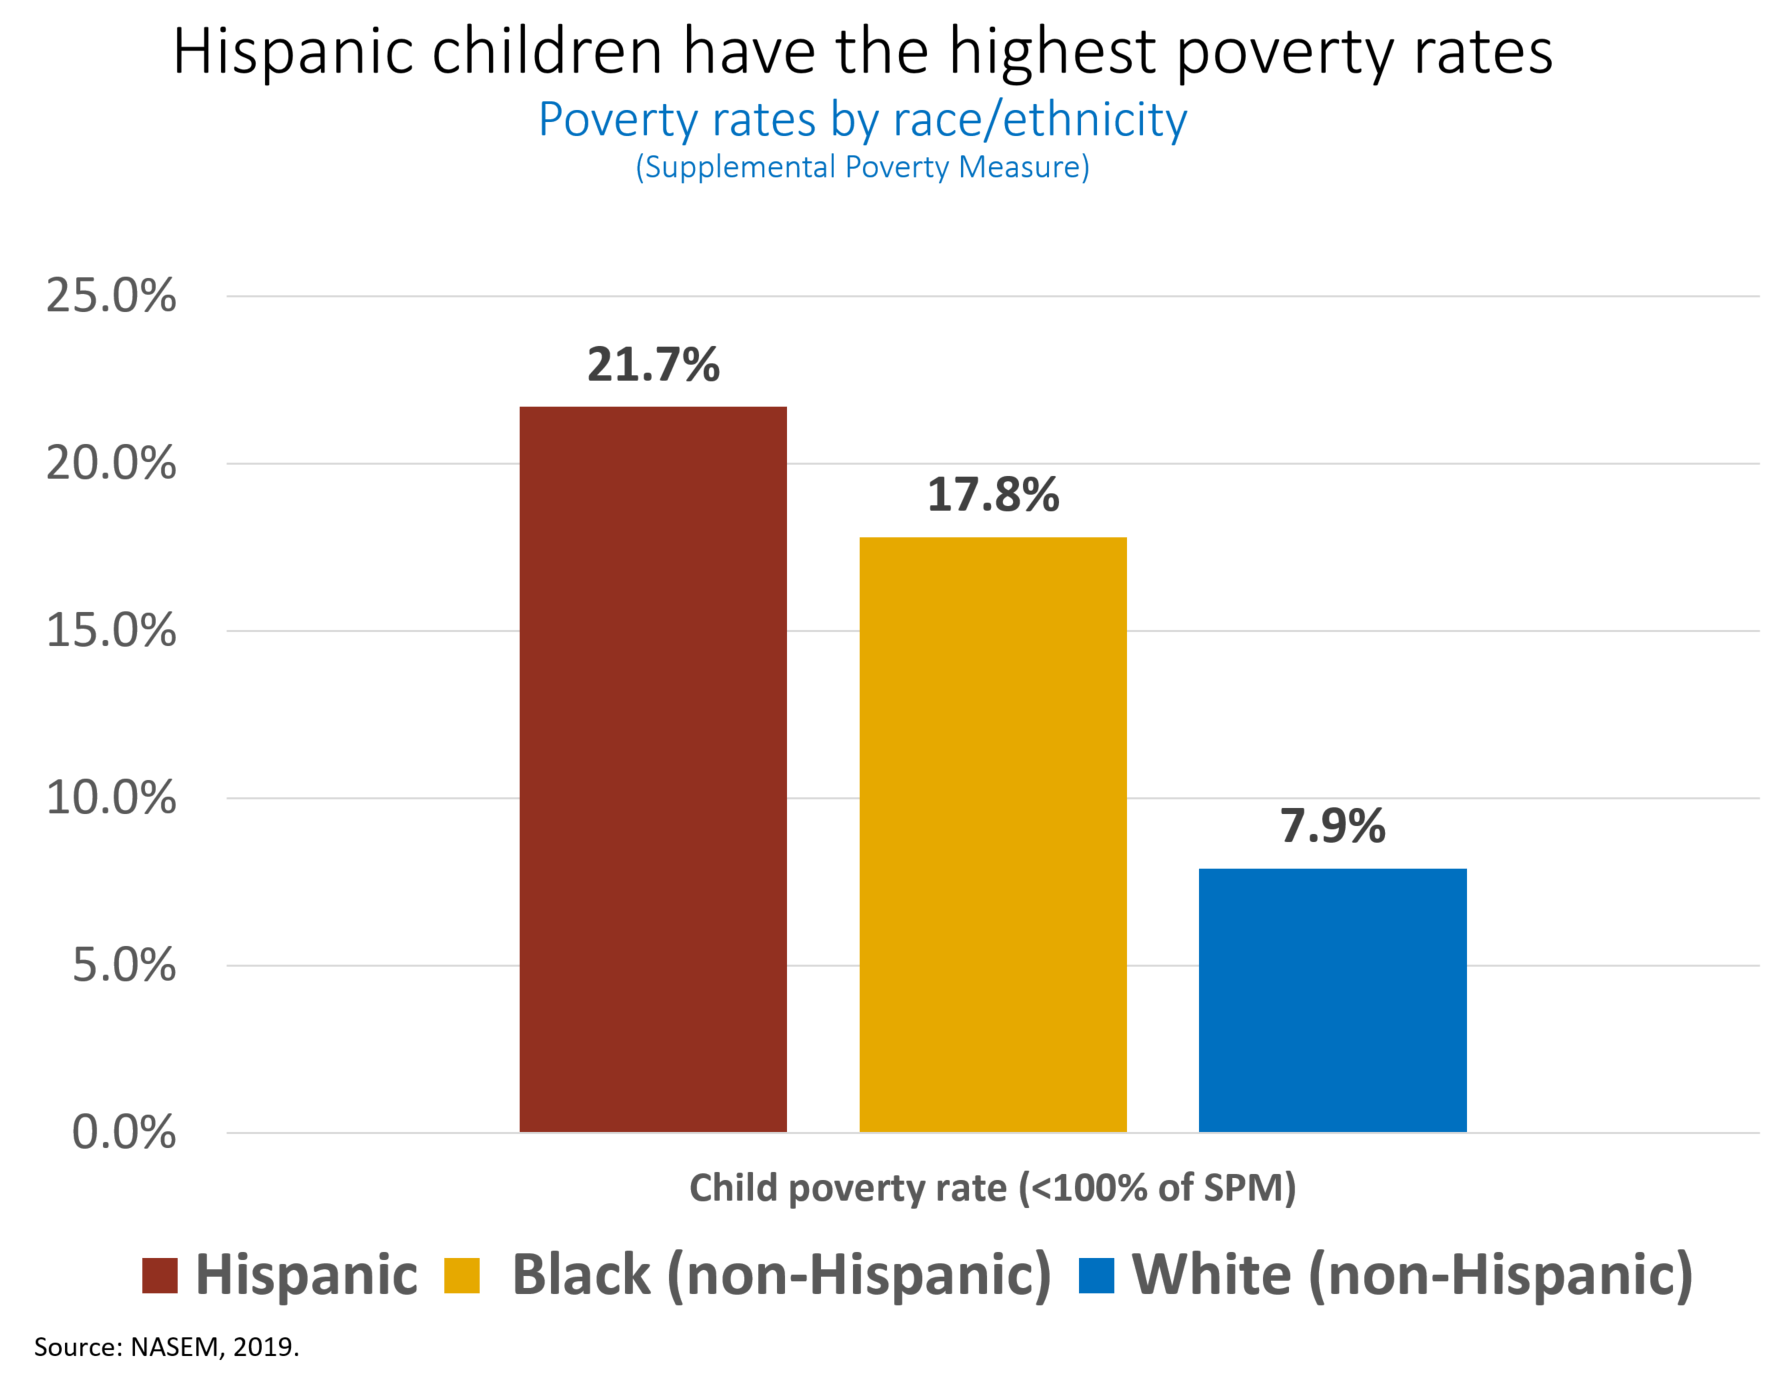 Graph showing child poverty rates by race and ethnicity